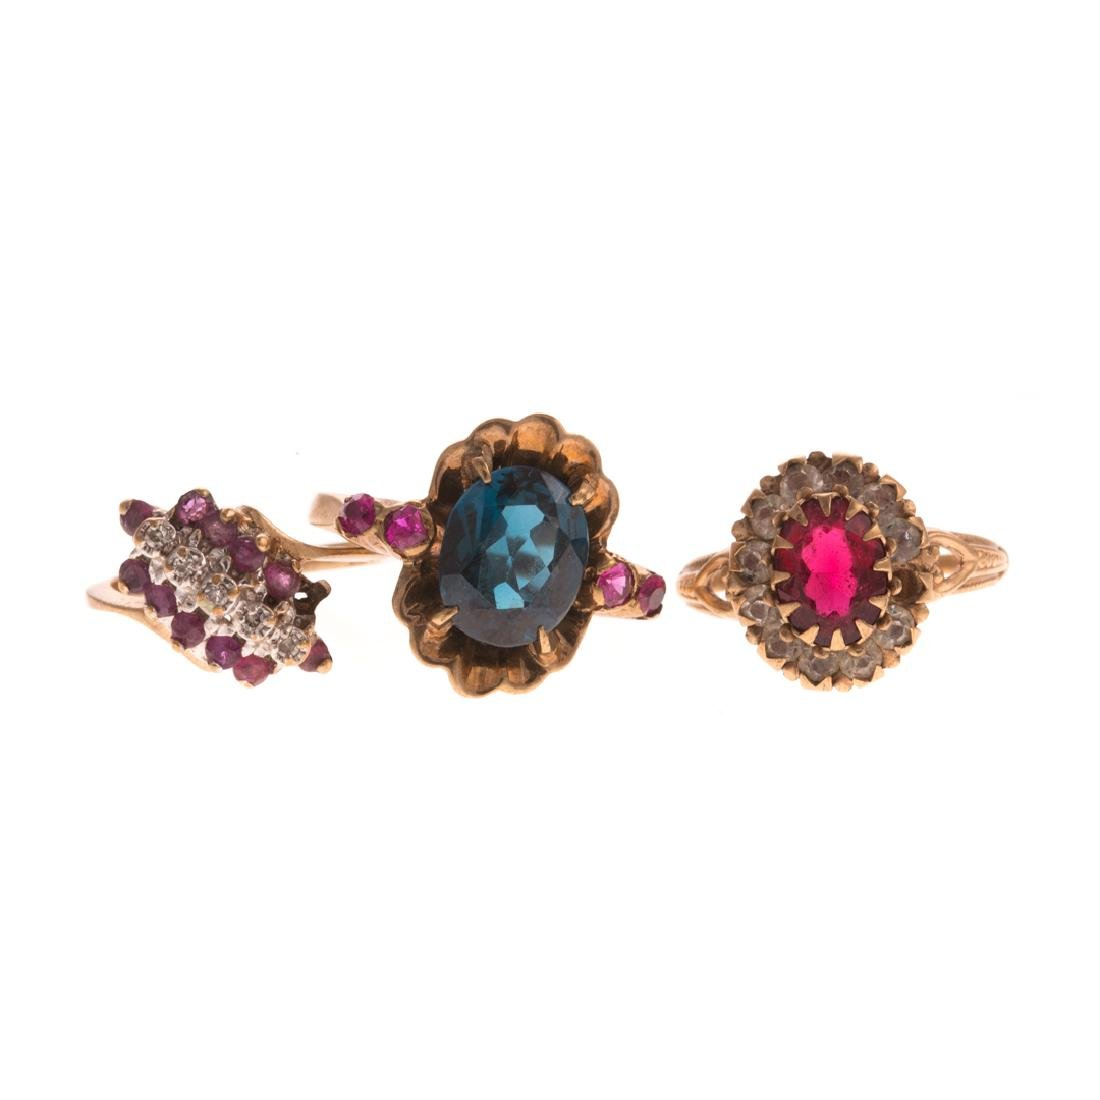 A Trio of Lady's Rings in 10K Yellow Gold